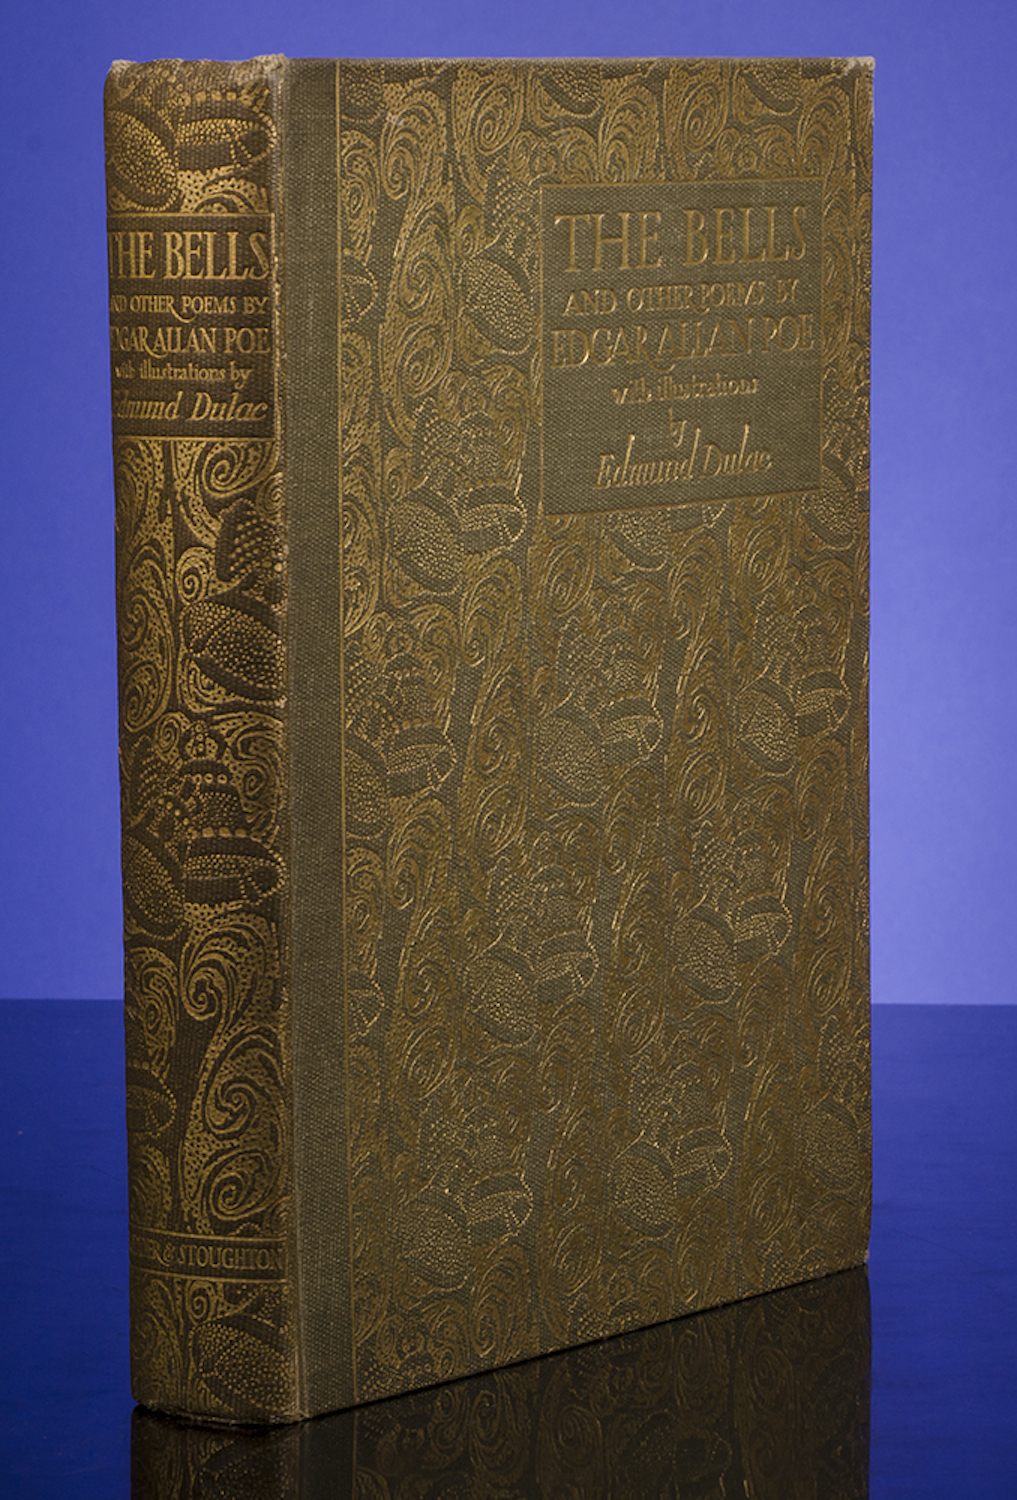 DULAC, EDMUND, ILLUSTRATOR; POE, EDGAR ALLAN - Bells and Other Poems, the